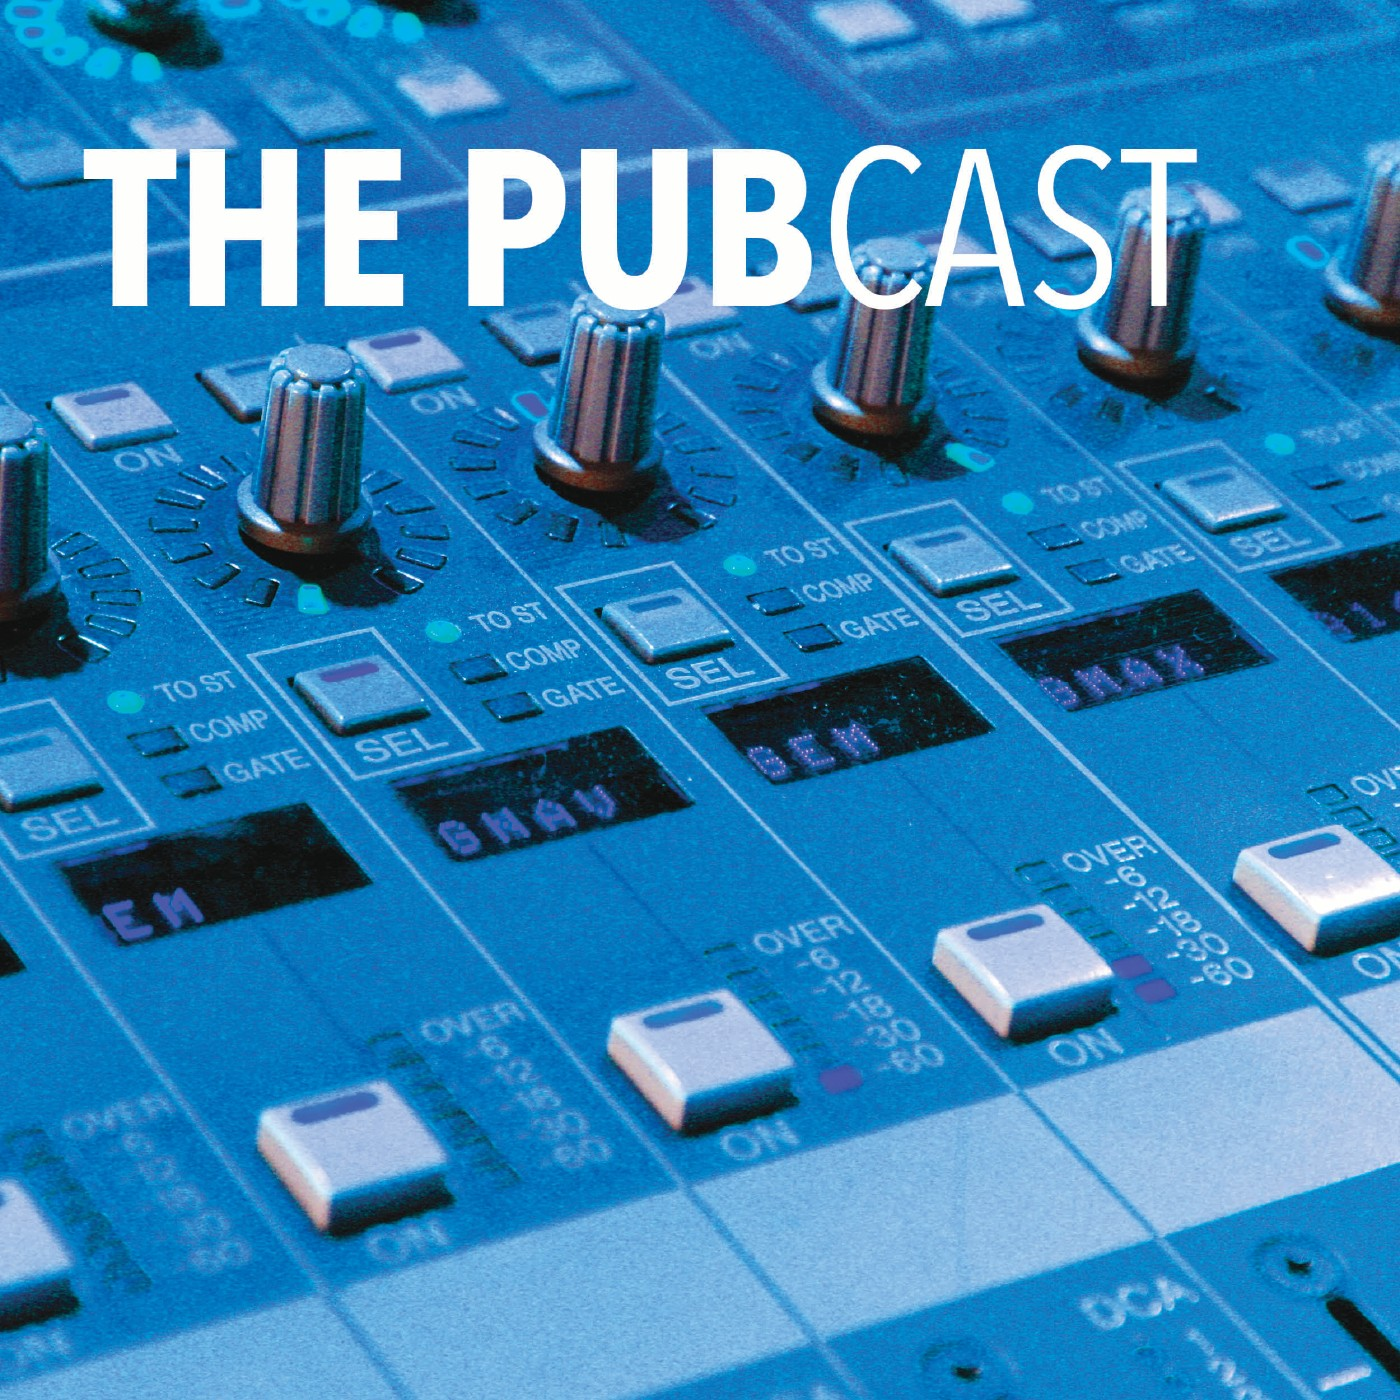 The Pubcast - Interviews with online publishing professionals